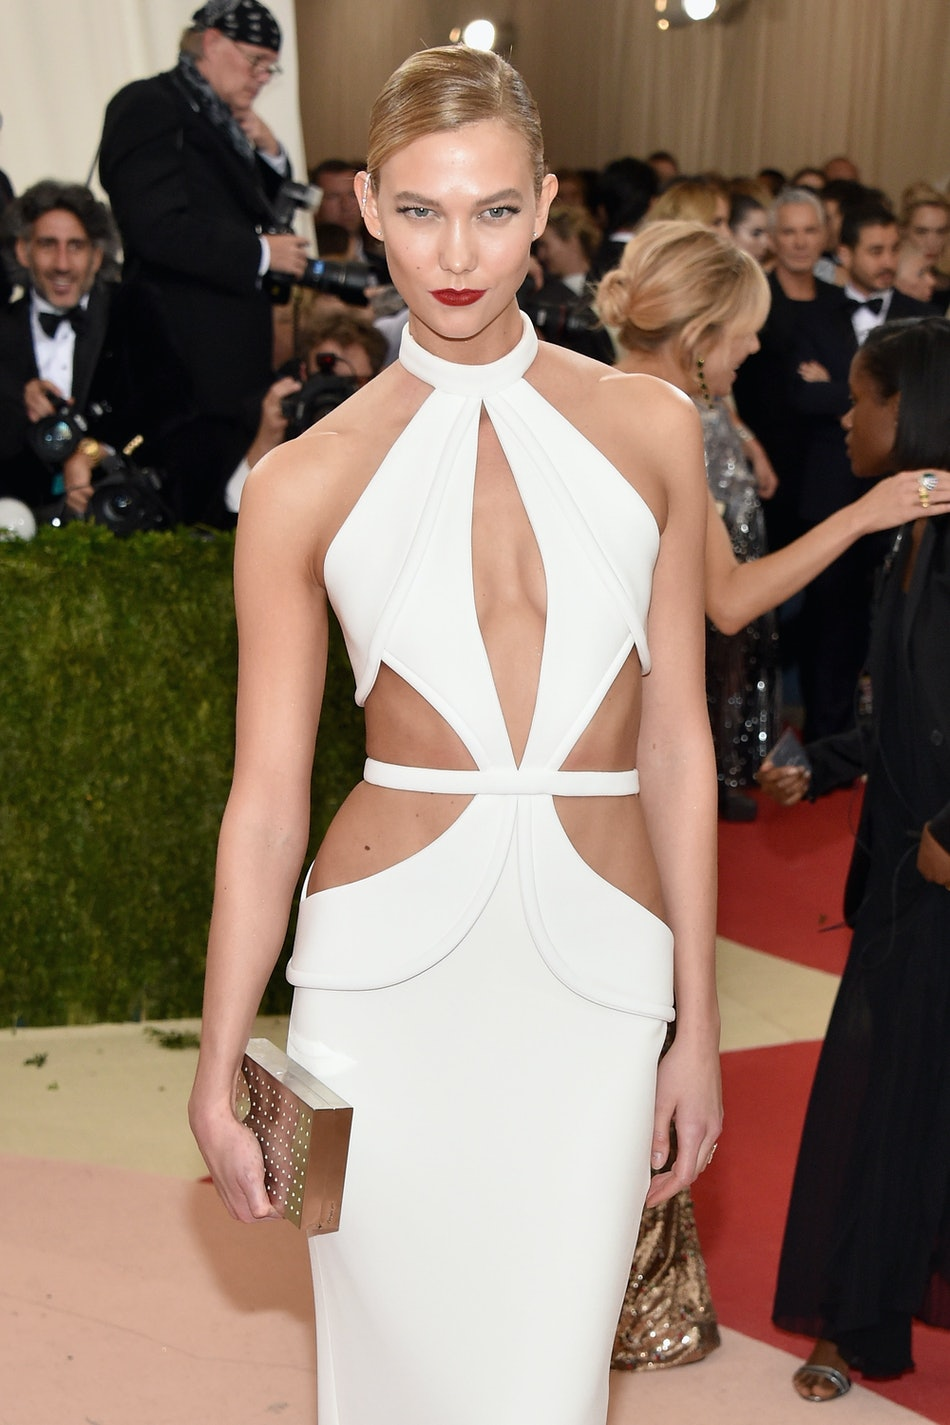 Model and Project Runway judge Karlie Kloss wears Brandon Maxwell to the 2016 Met Gala.